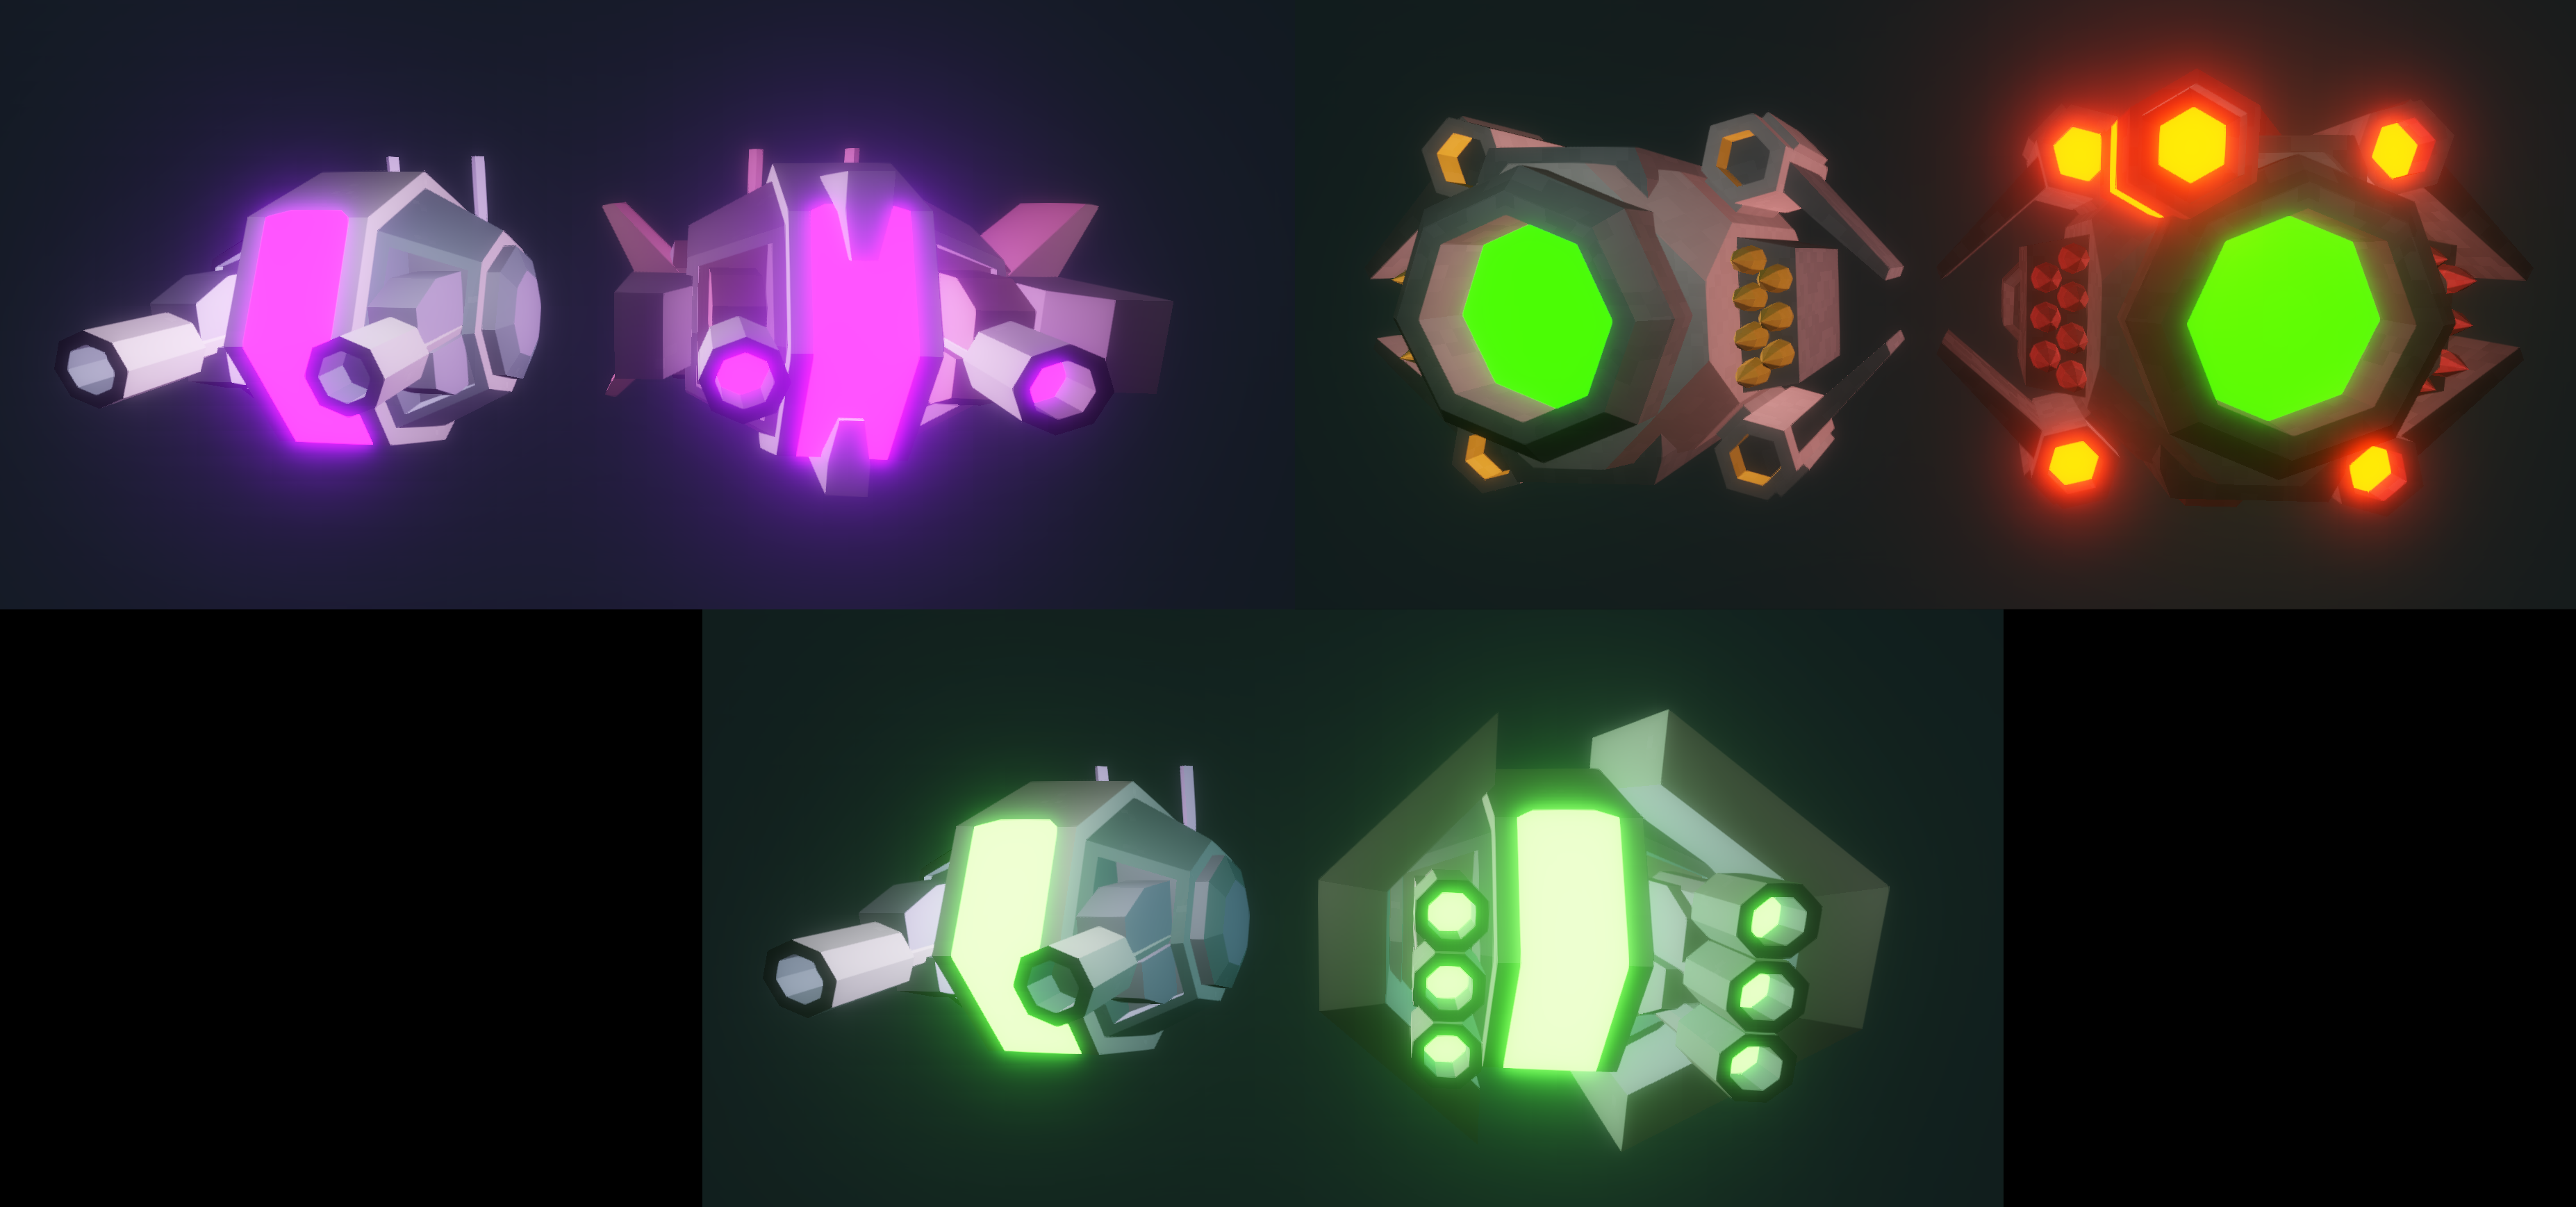 Hull Inventory E Increased Slightly Better Controller On Prompts Updated Player Ship Model Orb Grunt Shotgrunt And Homing Defender